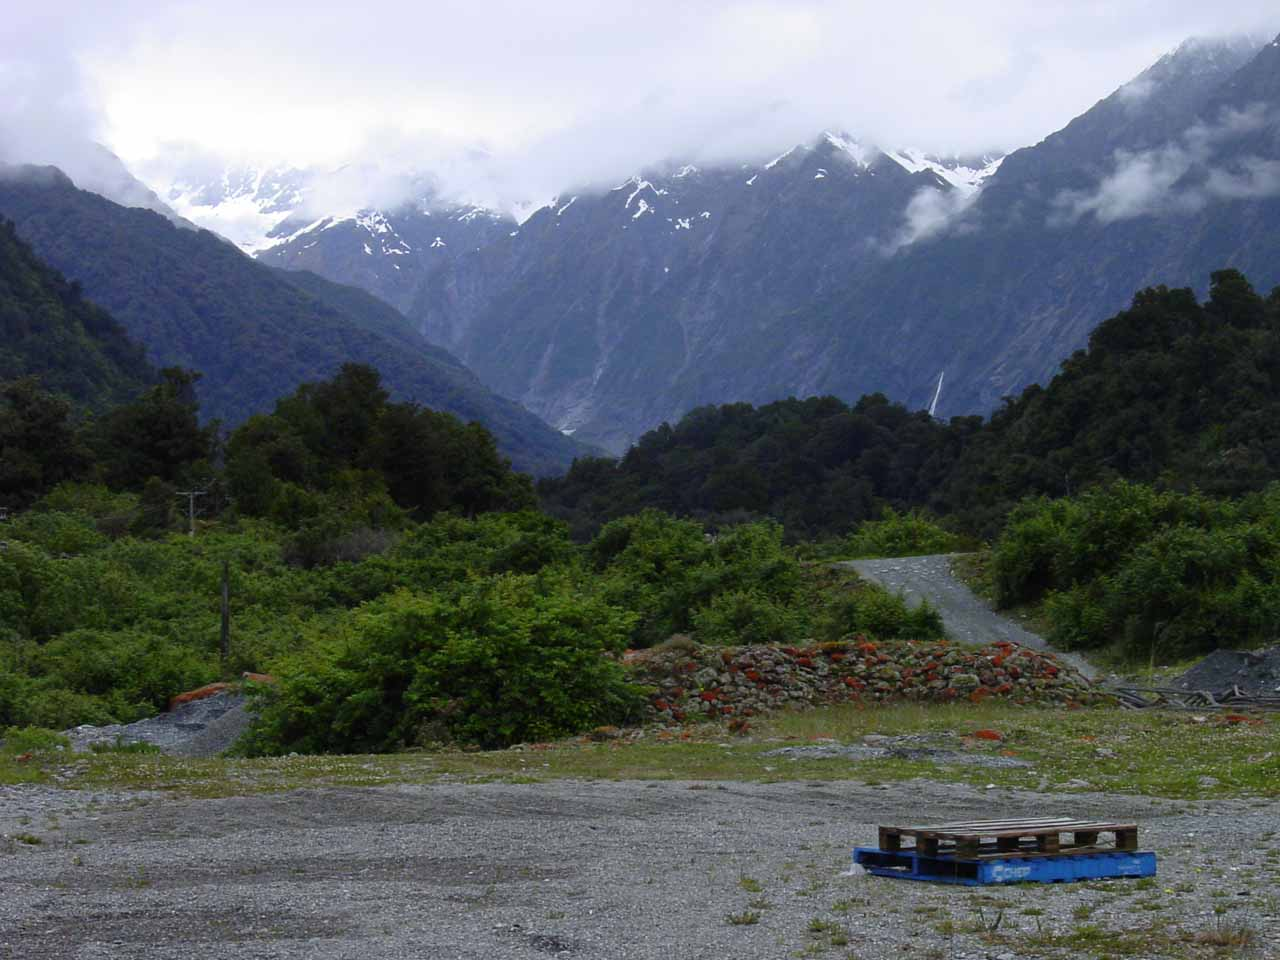 The waiting area for the Franz Josef Helihike